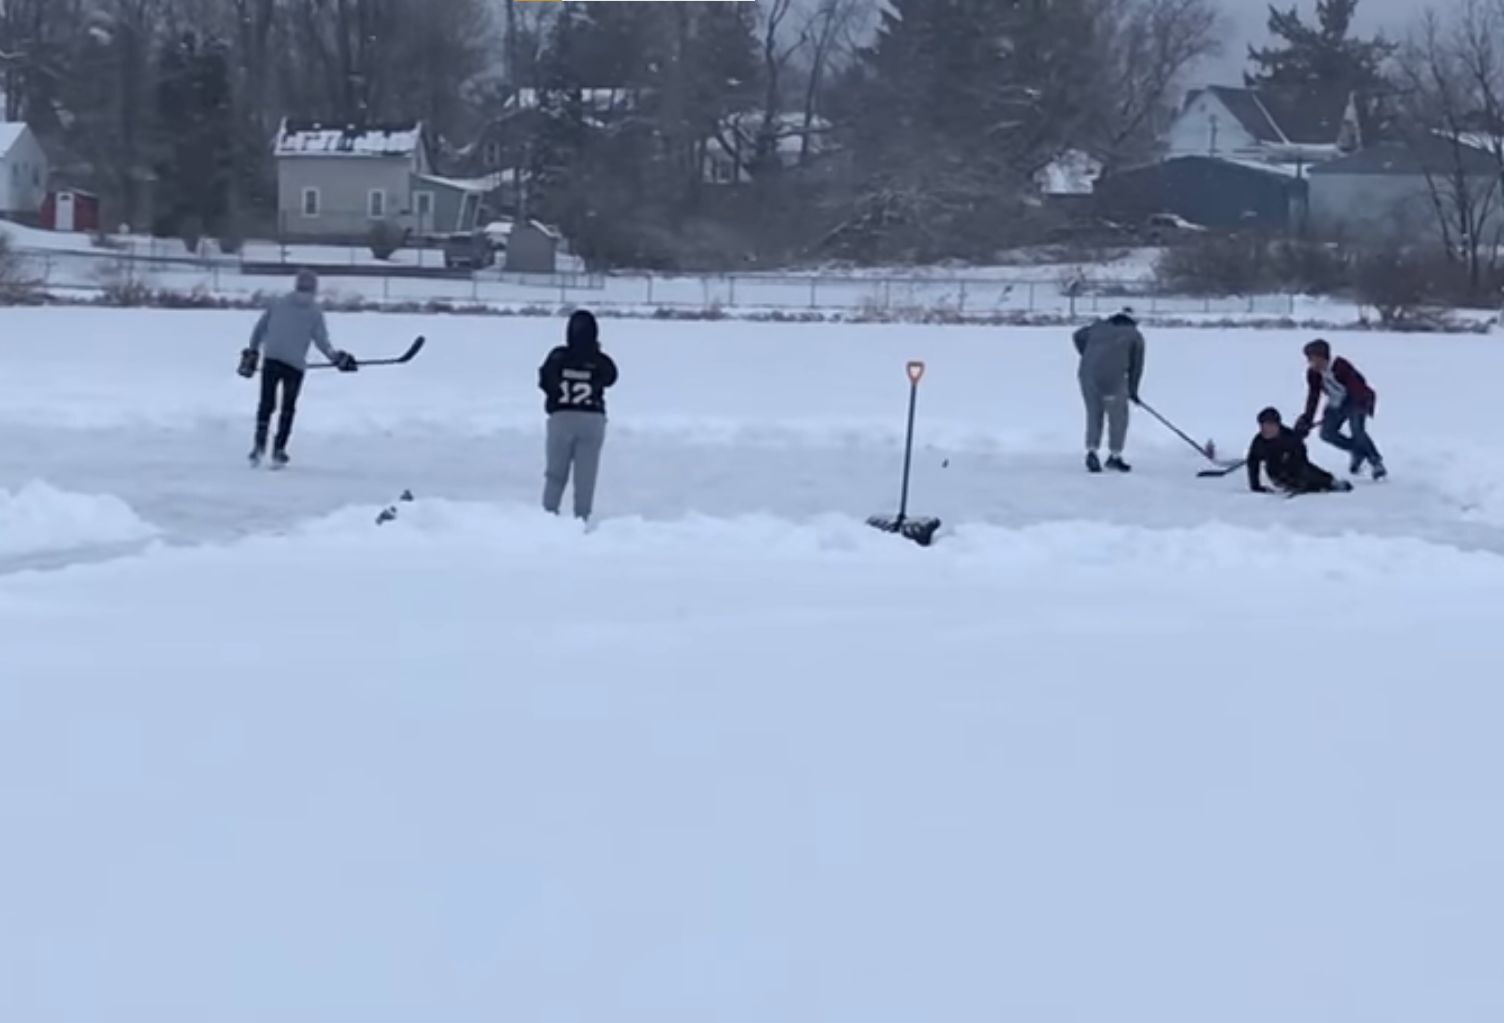 Ice skating returns to Forness Pond